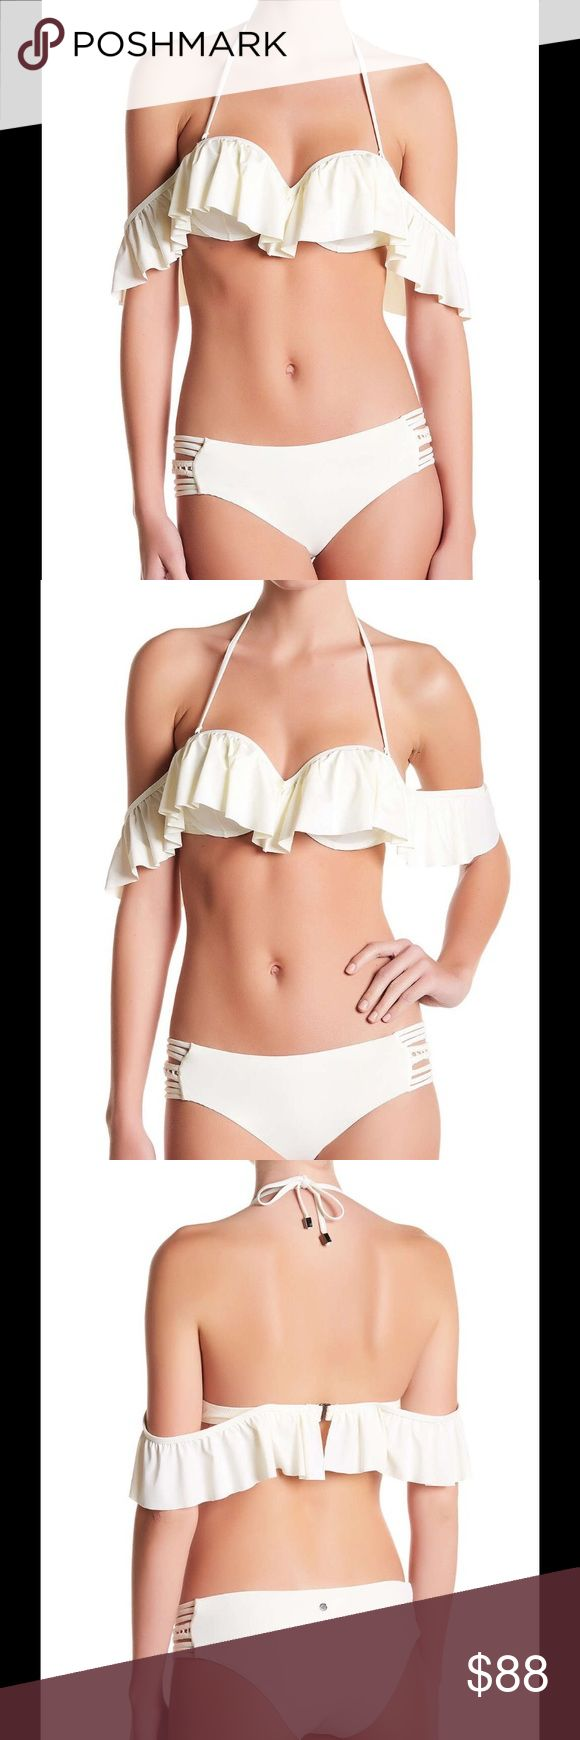 Raisins Bikini Top and bottom cream M Cream bikini Maldives top and bottom NEw with tags! Brief cut bottoms with cutout sides and details at sides with crochet trim fully lined and a cheeky coverage plus fits true to size. Mix and match top and bottom sizes bottoms come in size S, M, L and top in S, M, L retails for $129 for top and bottom. Will sell top or bottom separately also comes in teal/ blue. Raisins Swim Bikinis